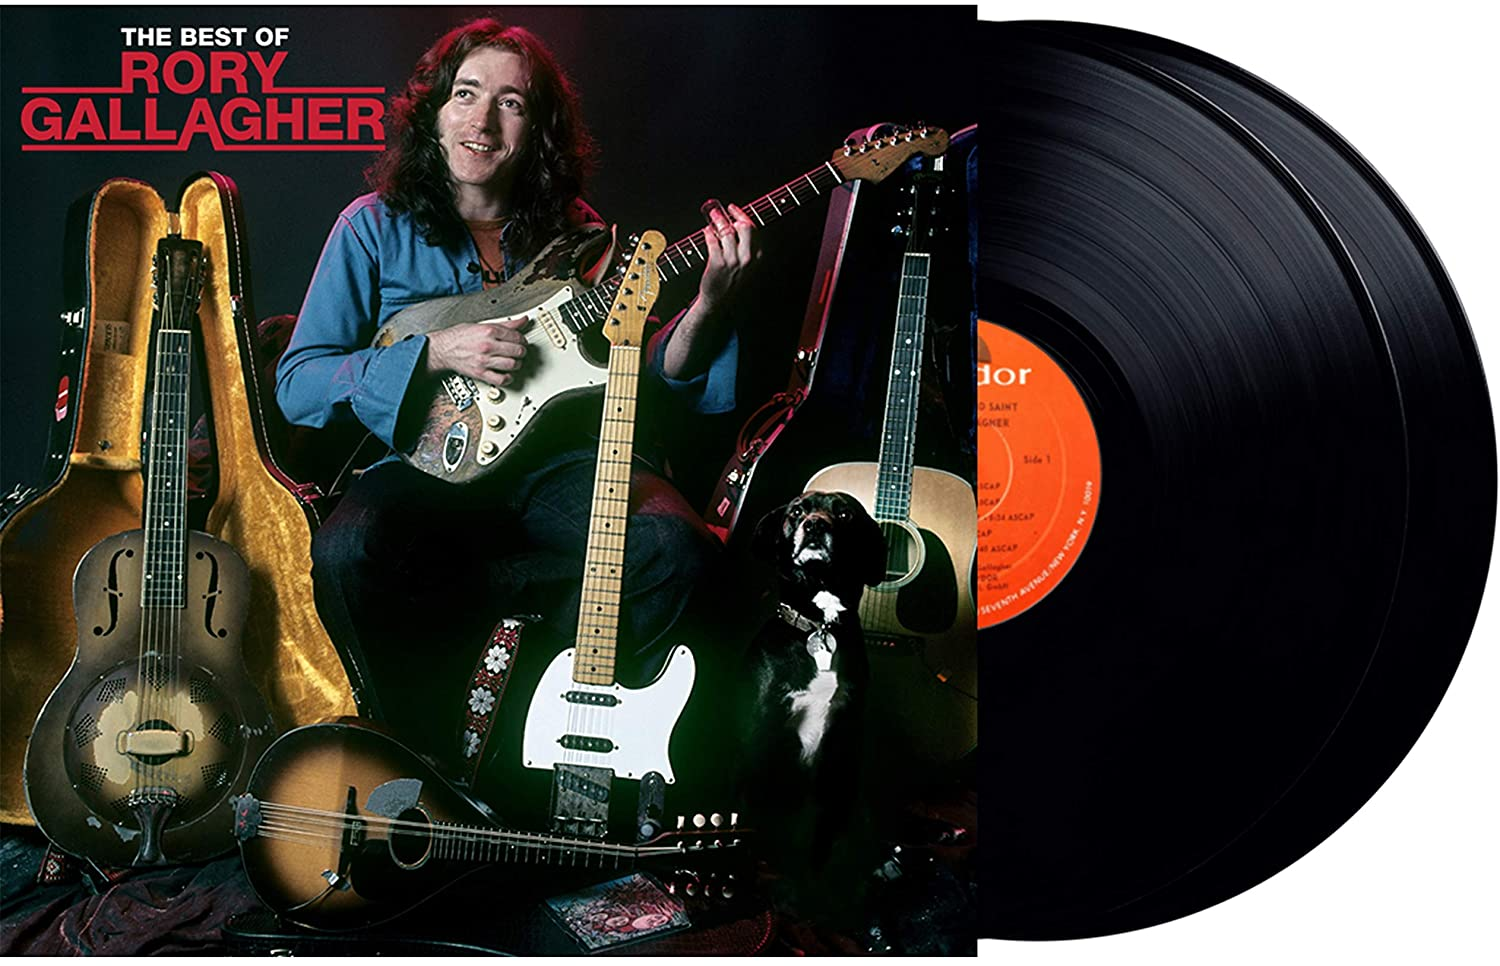 The Best Of Rory Gallagher - Vinyl